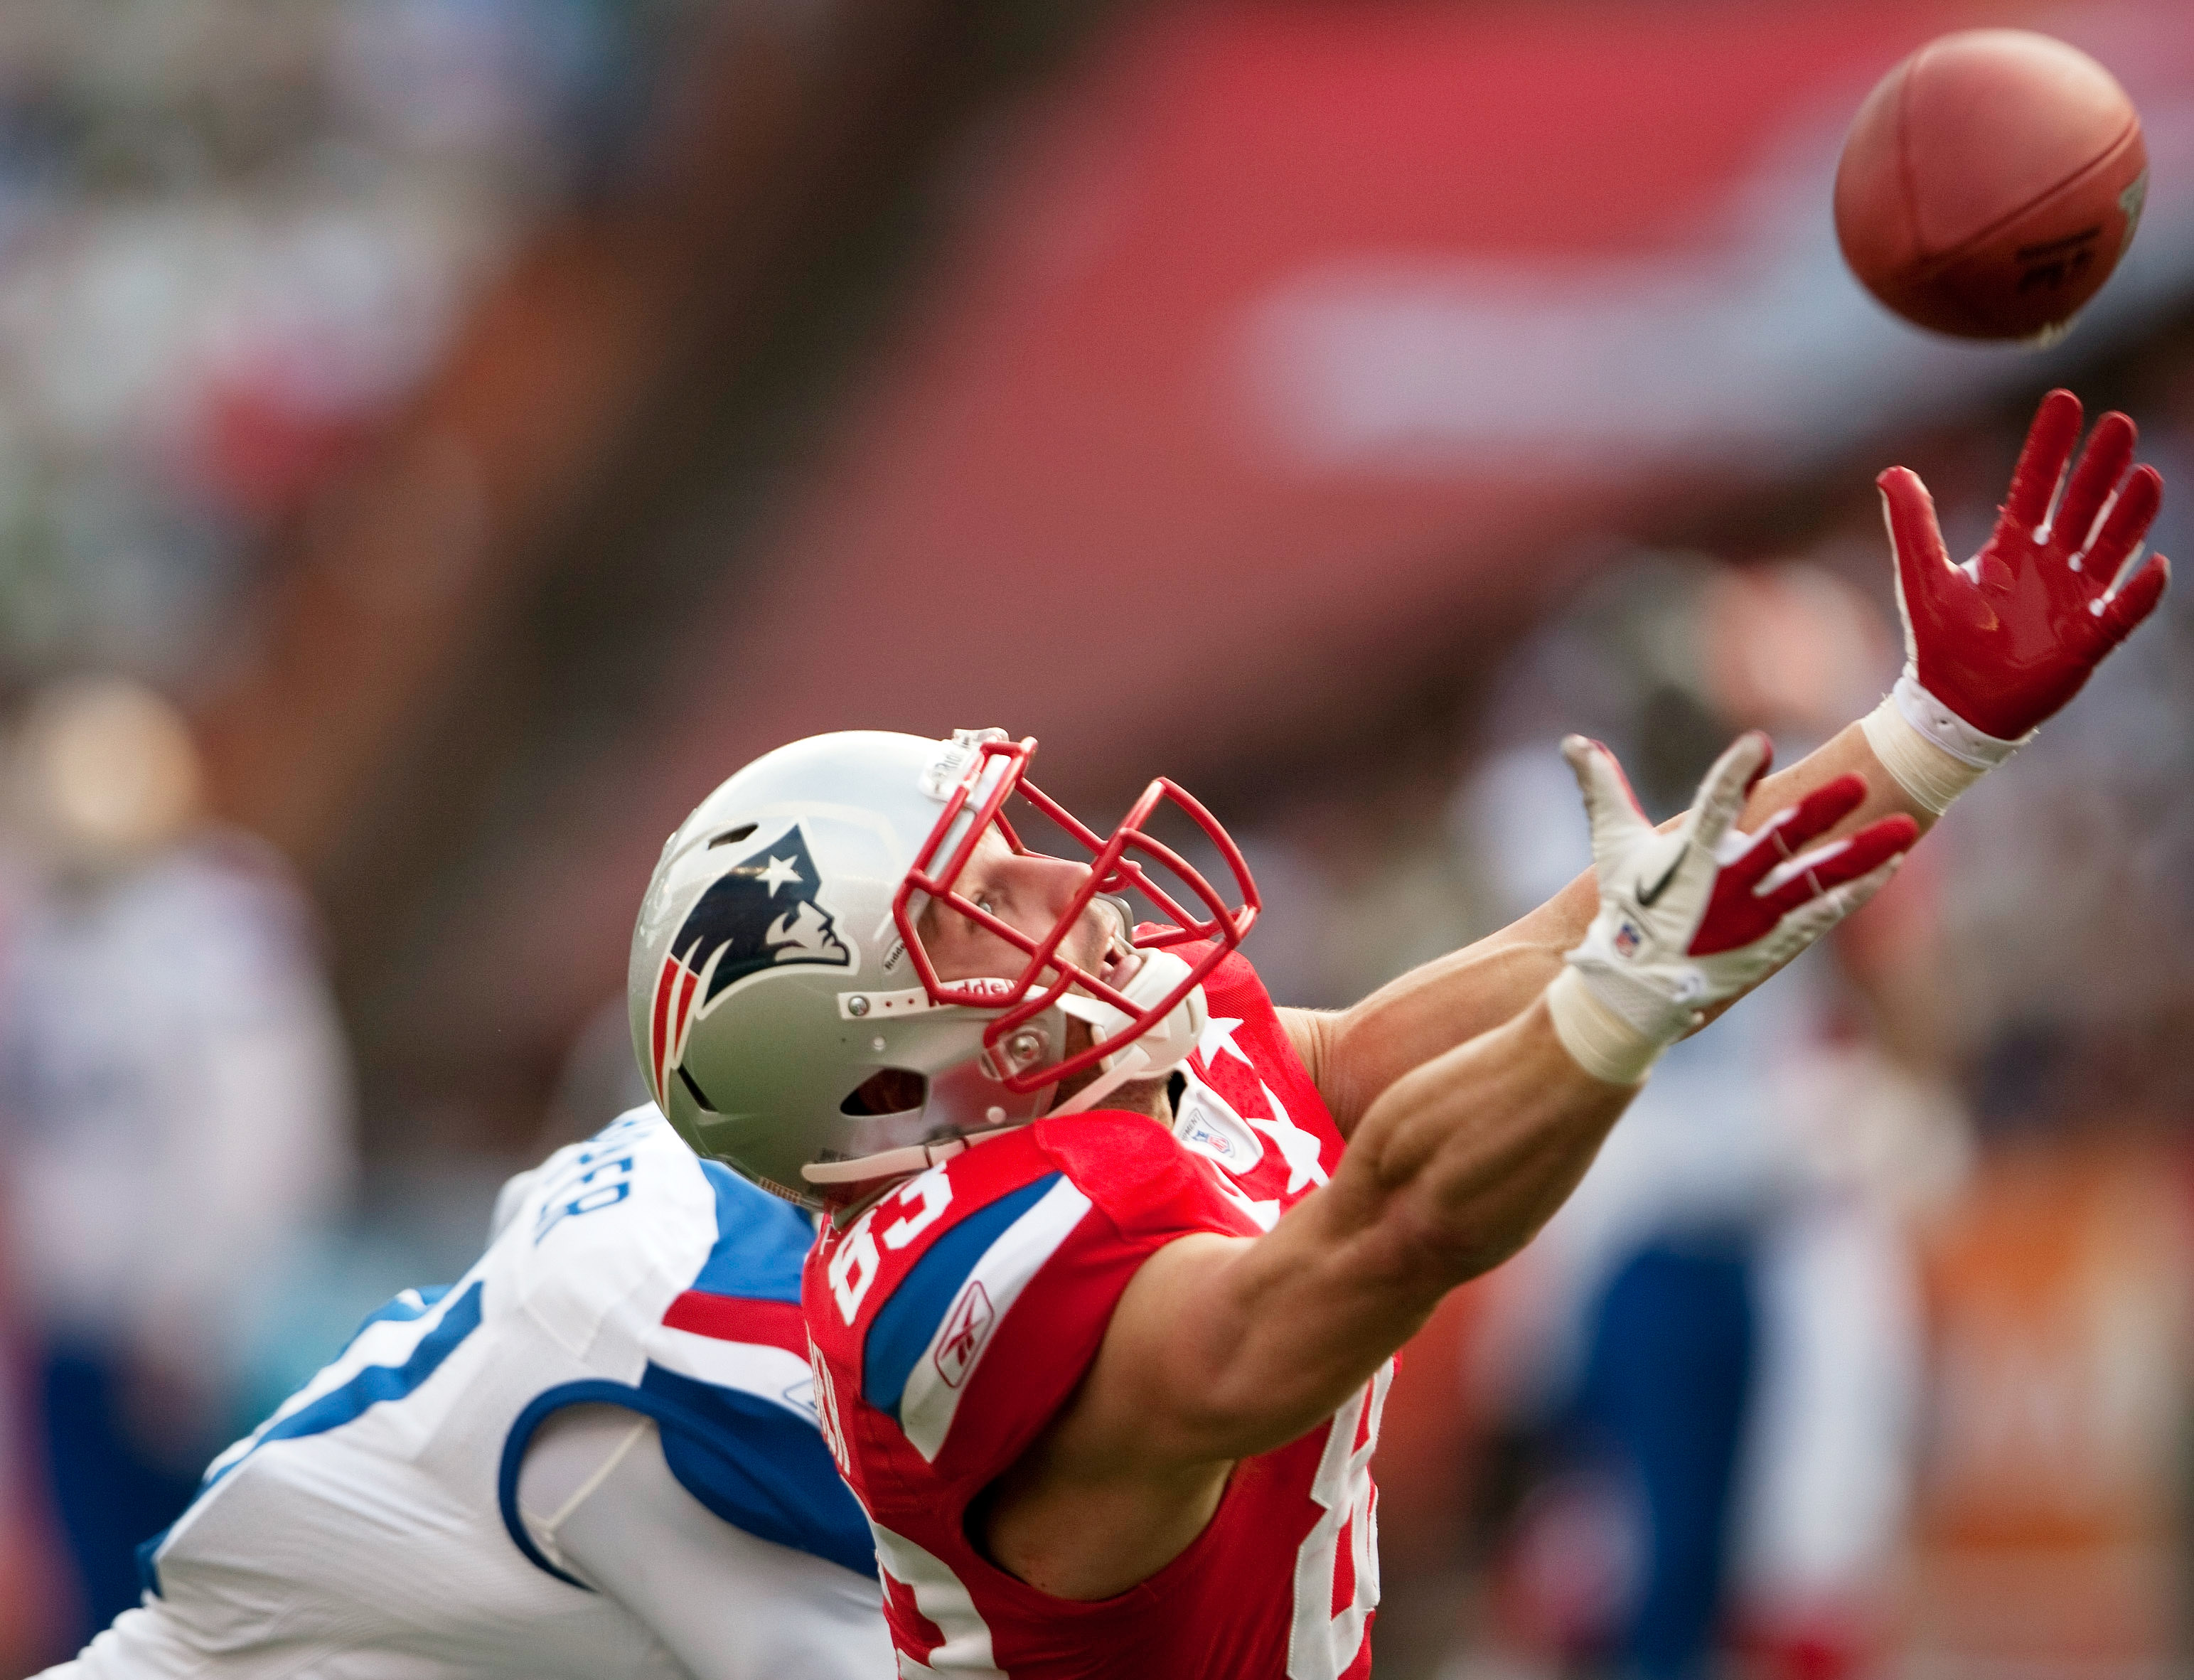 HONOLULU - JANUARY 30:  Wes Welker, #83 of the New England Patriots tries to reel in a pass during the 2011 NFL Pro Bowl at Aloha Stadium on January 30, 2011 in Honolulu, Hawaii. NFC won 55-41 over the AFC. (Photo by Kent Nishimura/Getty Images)